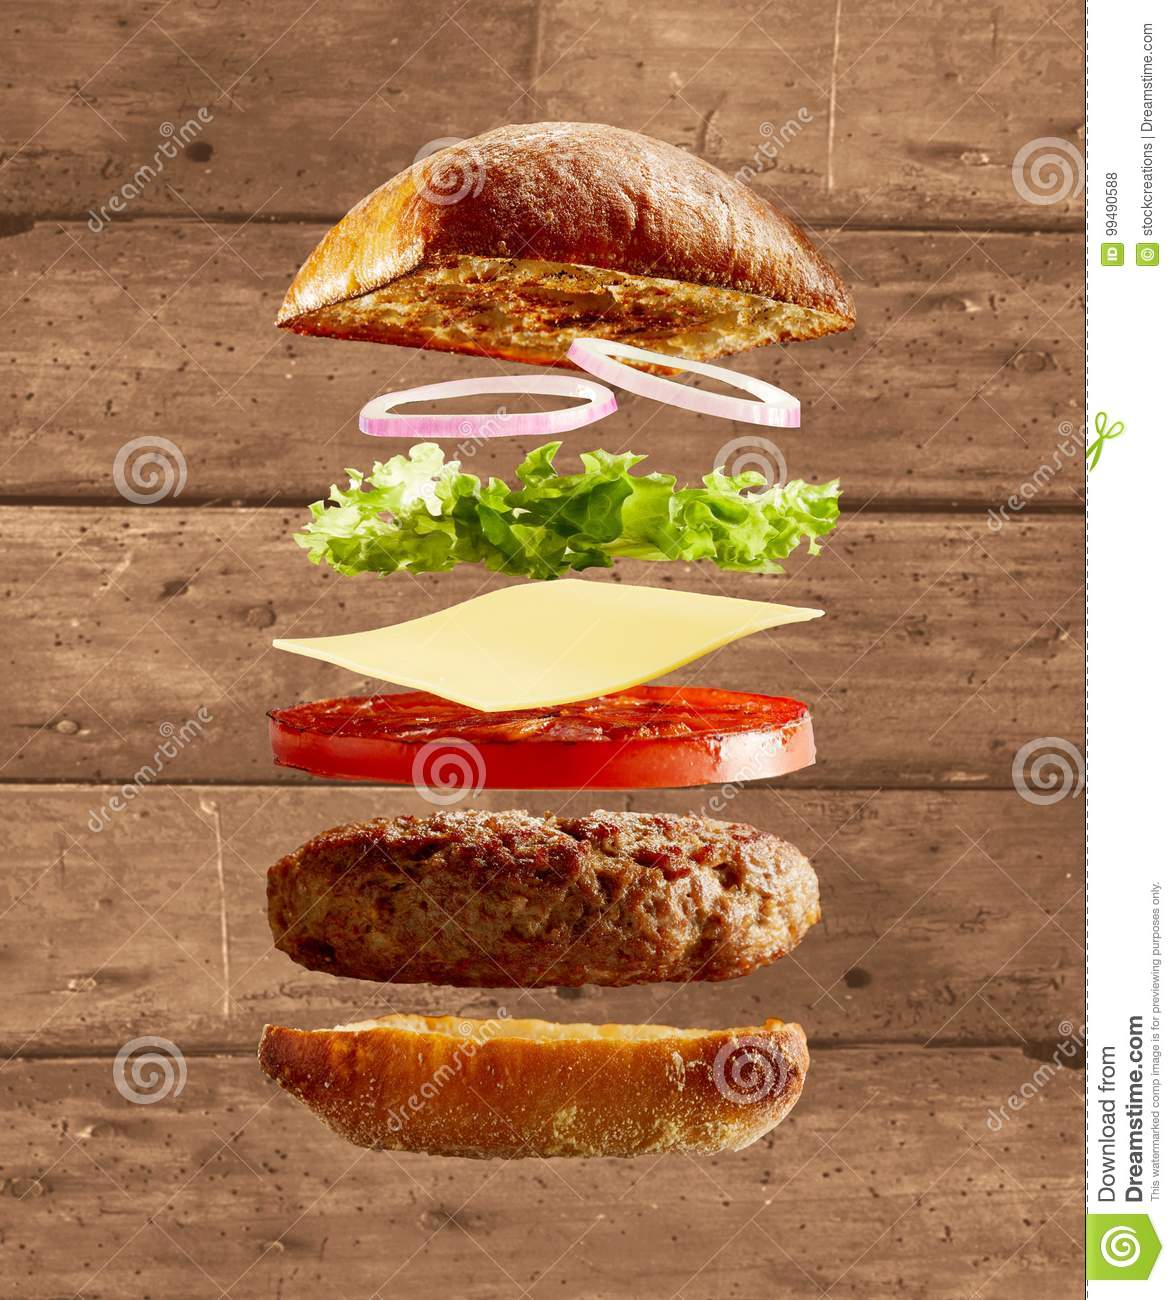 Cost U Less >> Exploded Diagram Of Burger, Buns And Ingredients Stock ...